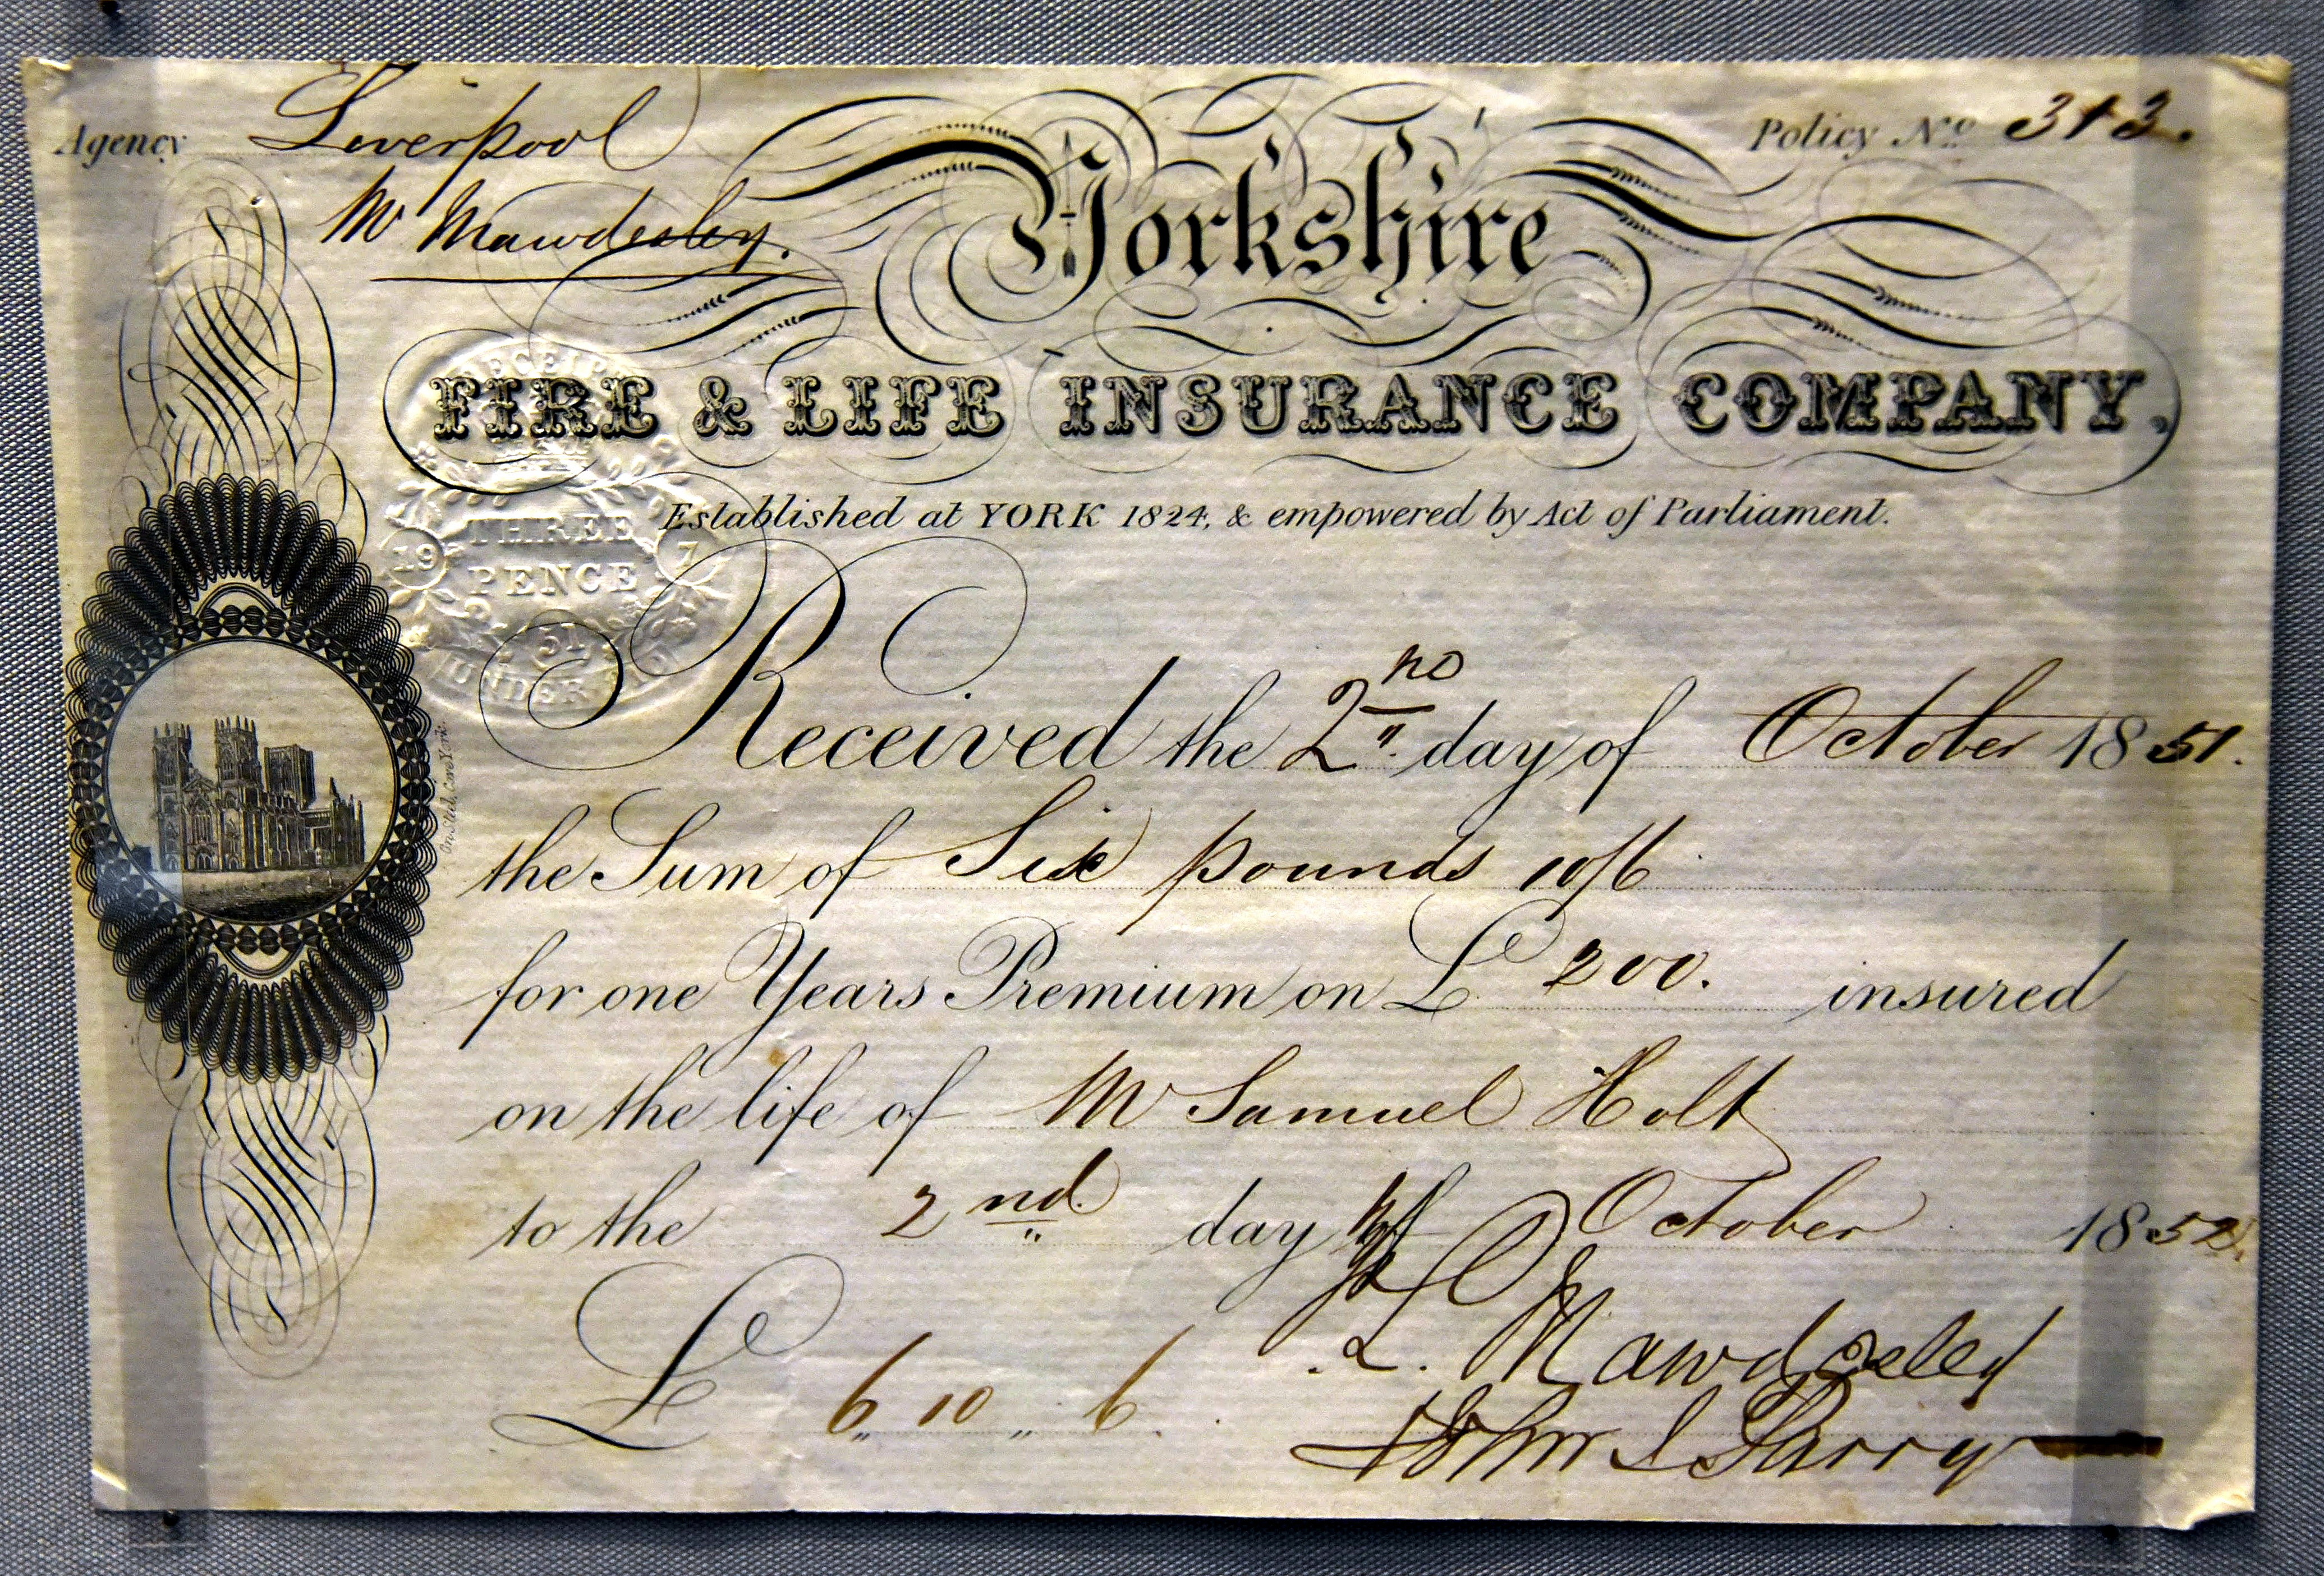 File:Life insurance certificate issued by the Yorkshire Fire & Life Insurance Company to Samuel Holt, Liverpool, England, 1851. On display at the British Museum in London.jpg - Wikipedia